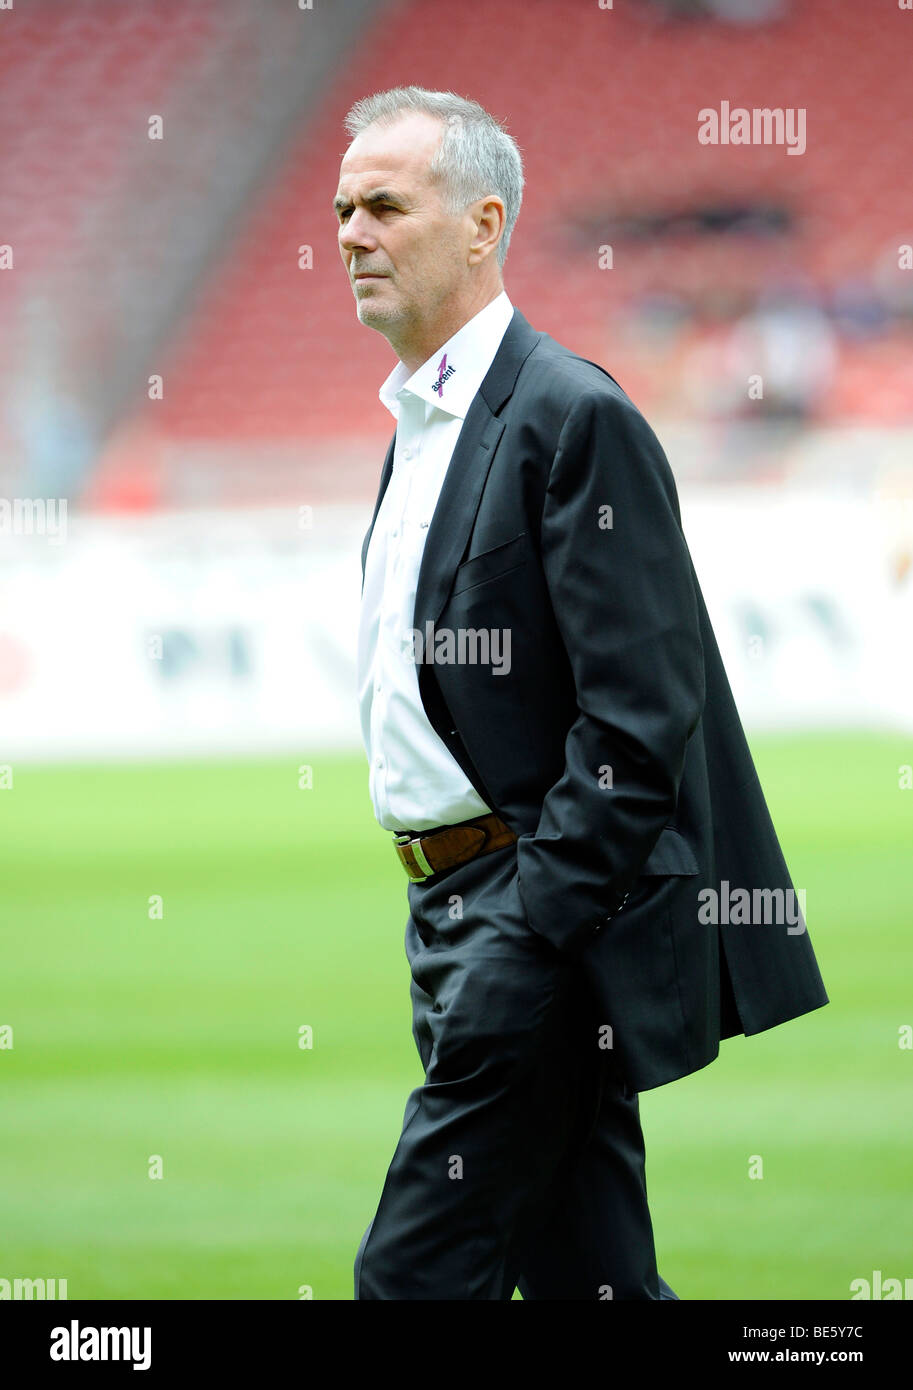 Manager Rolf Dohmen, Karlsruher SC Stock Photo